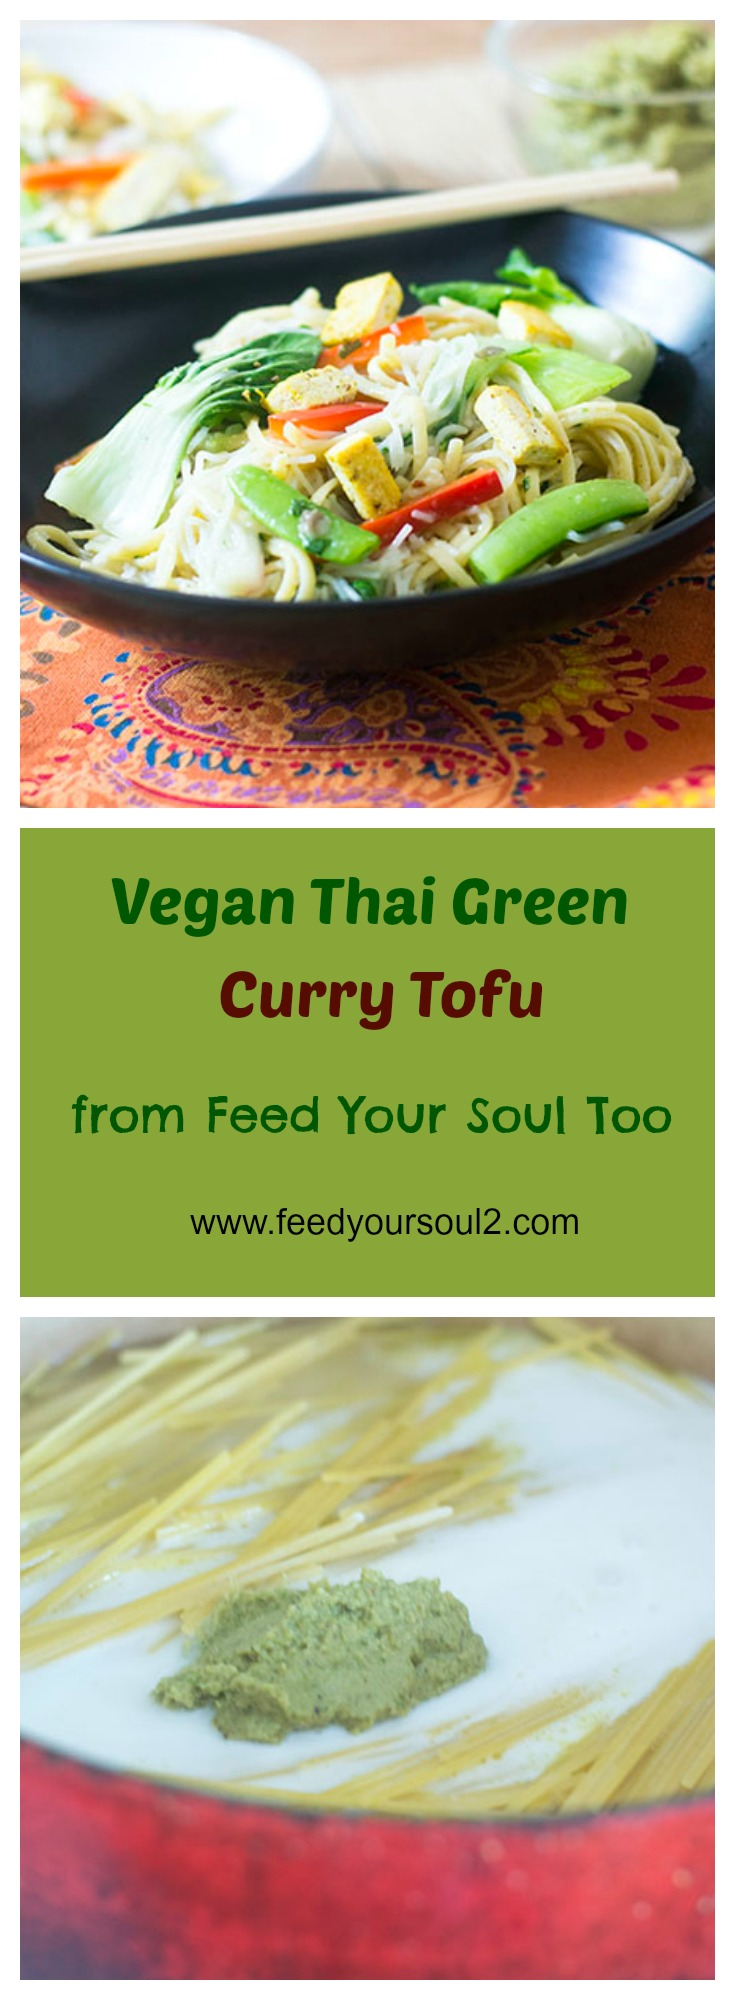 Vegan Thai Green Curry Tofu #Thaifood #vegan #curry | feedyoursoul2.com